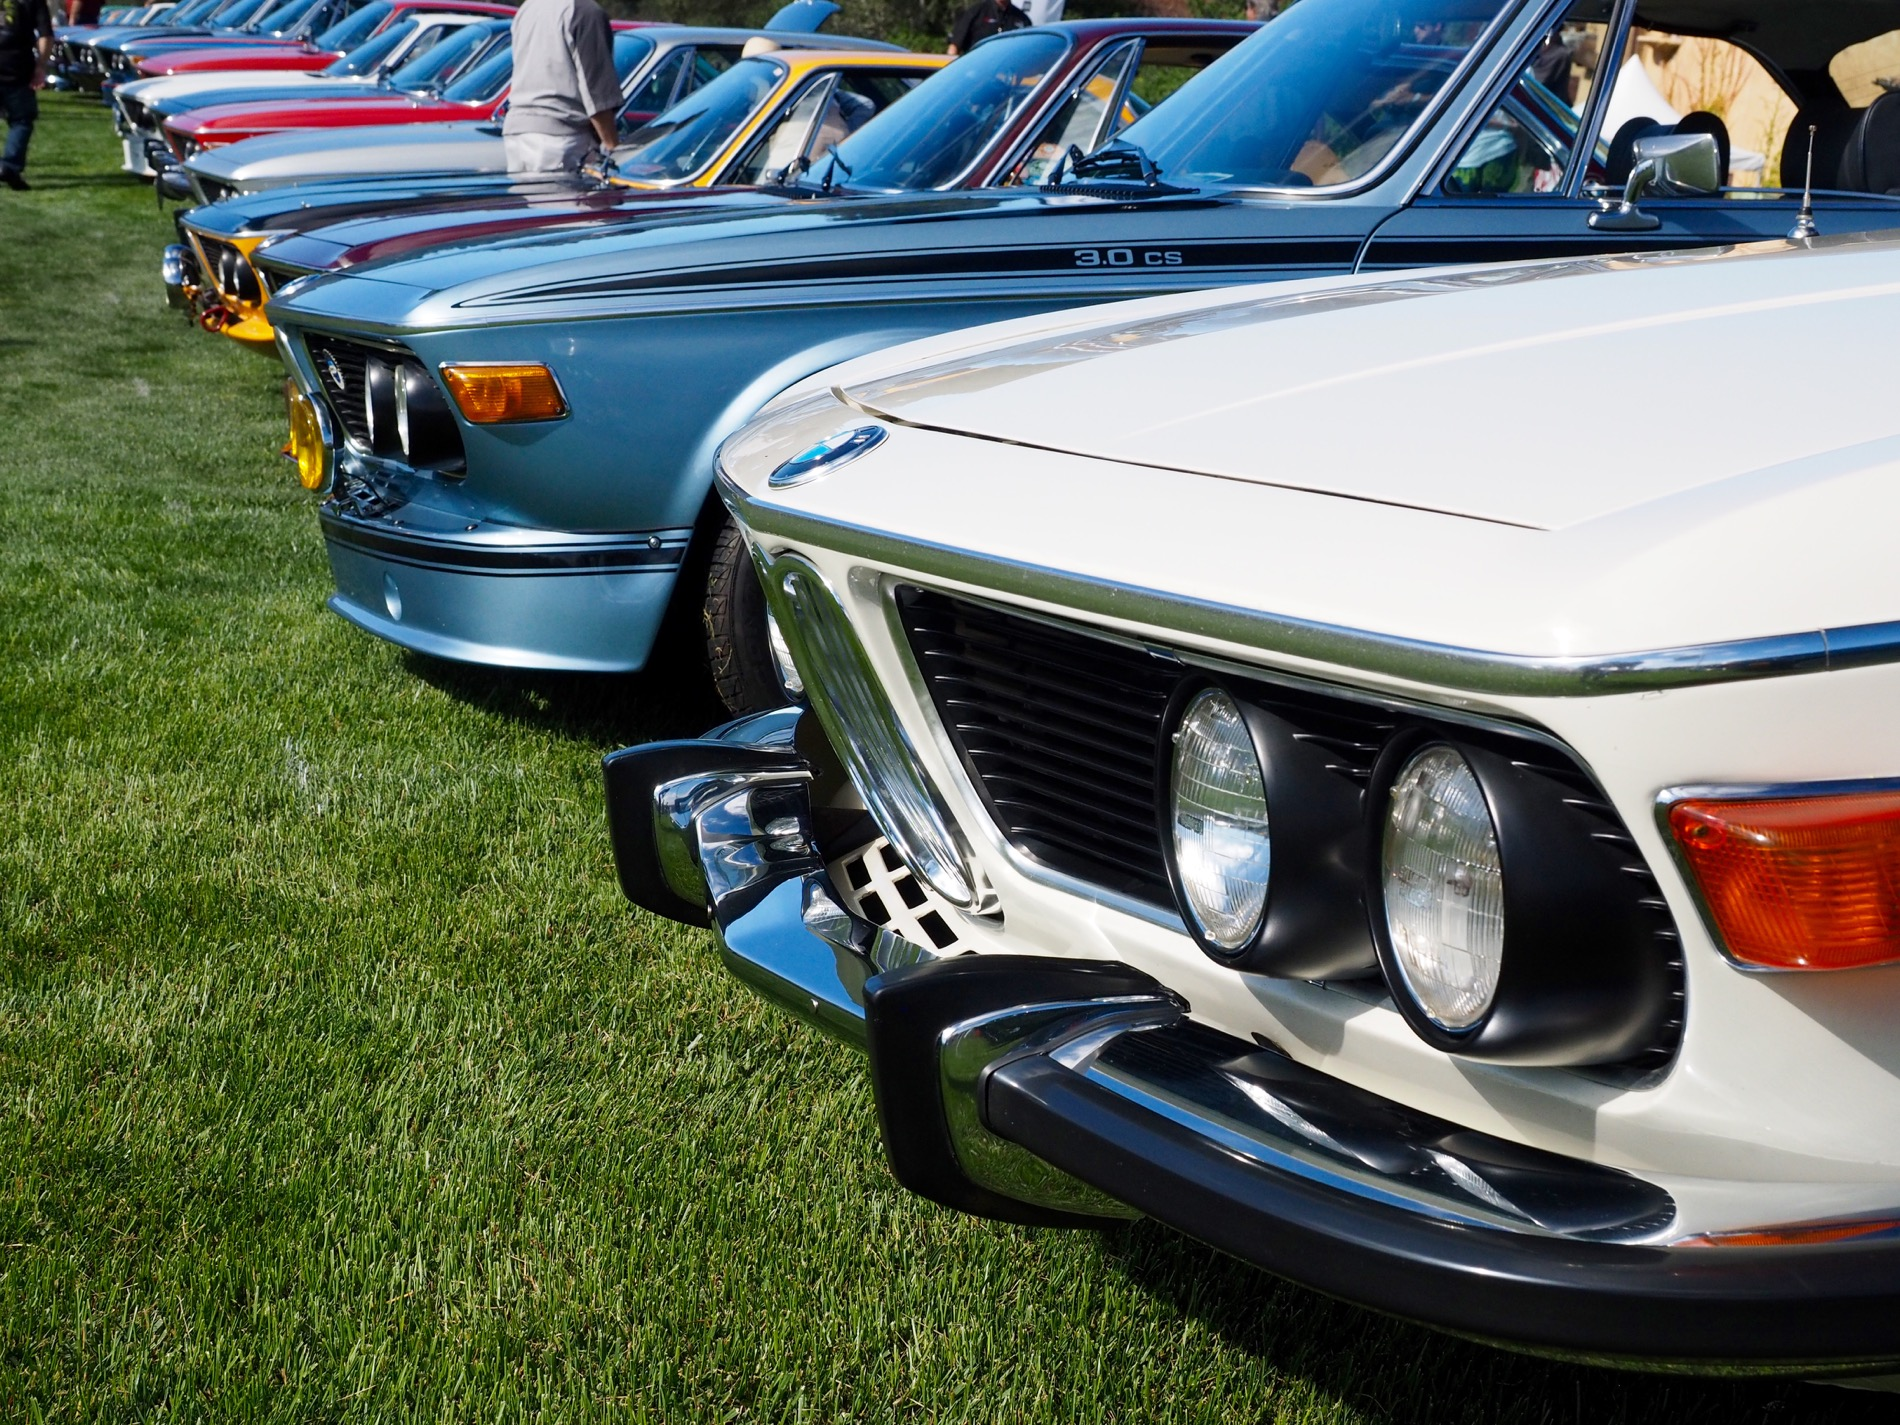 BMW Legends of the autobahn images 11